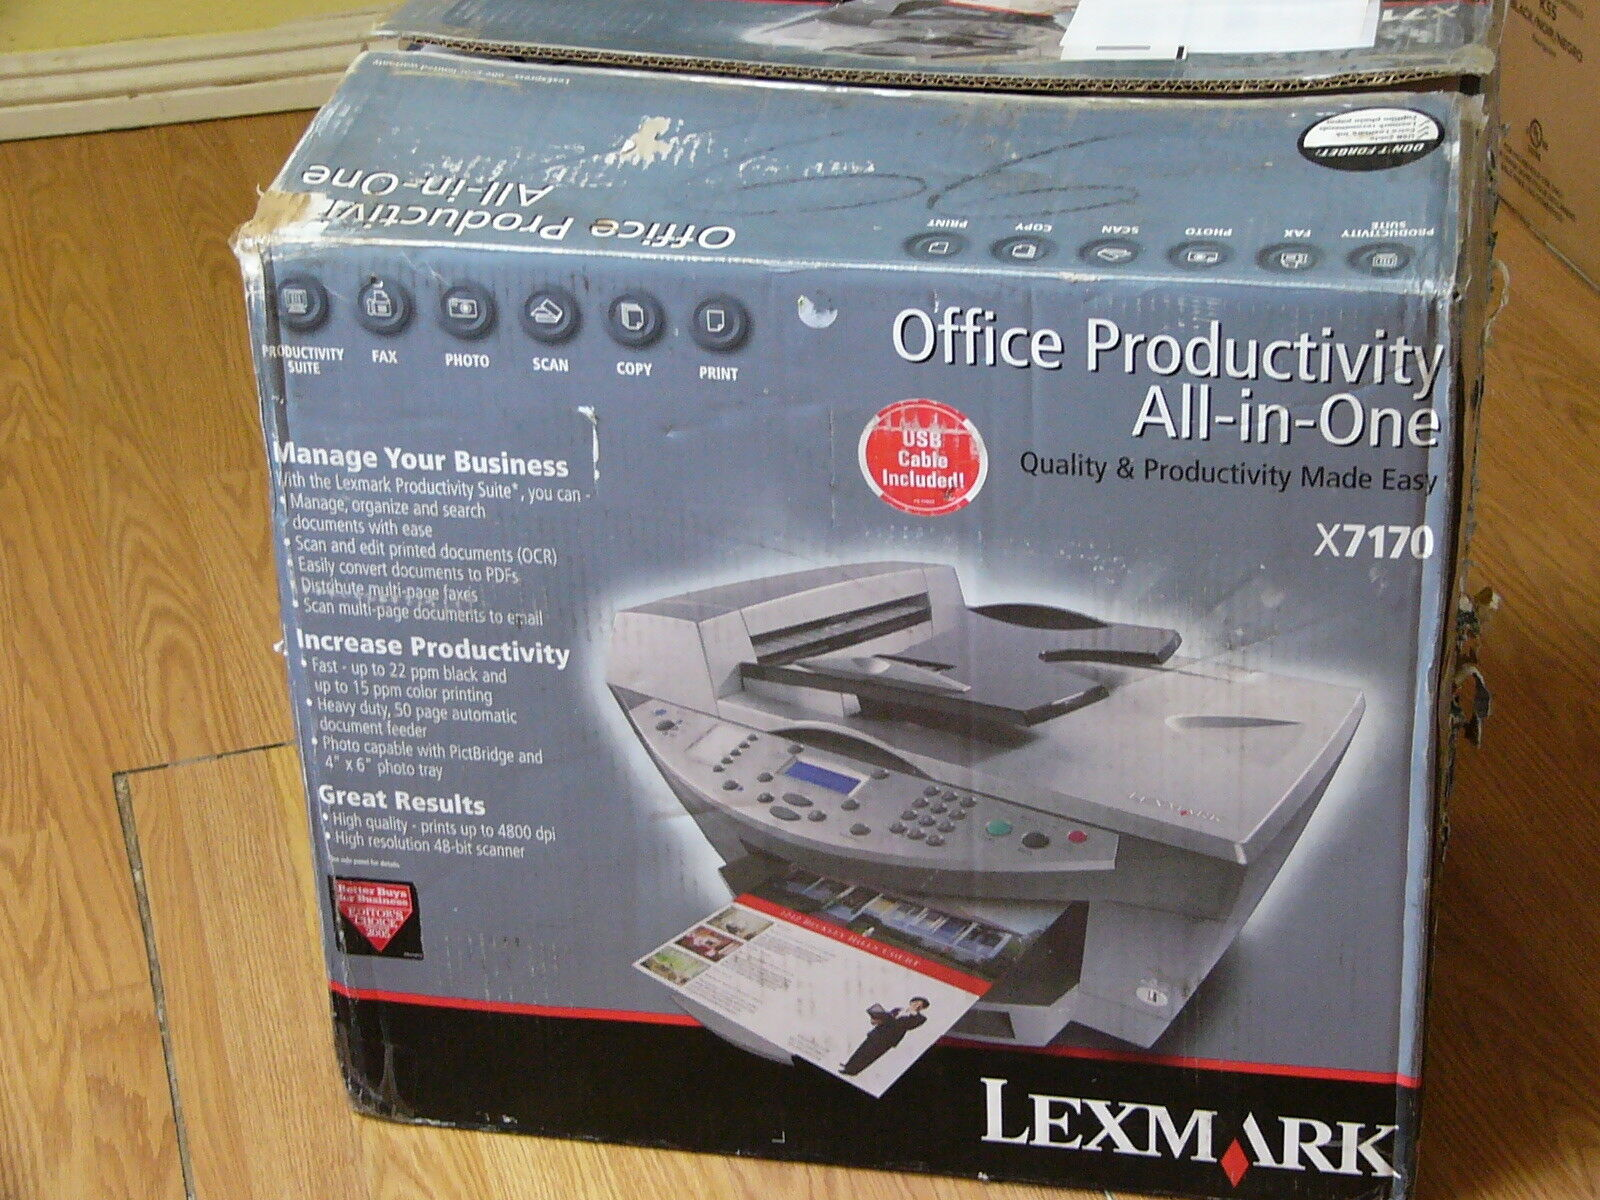 LEXMARK X7170 ALL-IN-ONE PRINTER DRIVER FOR PC